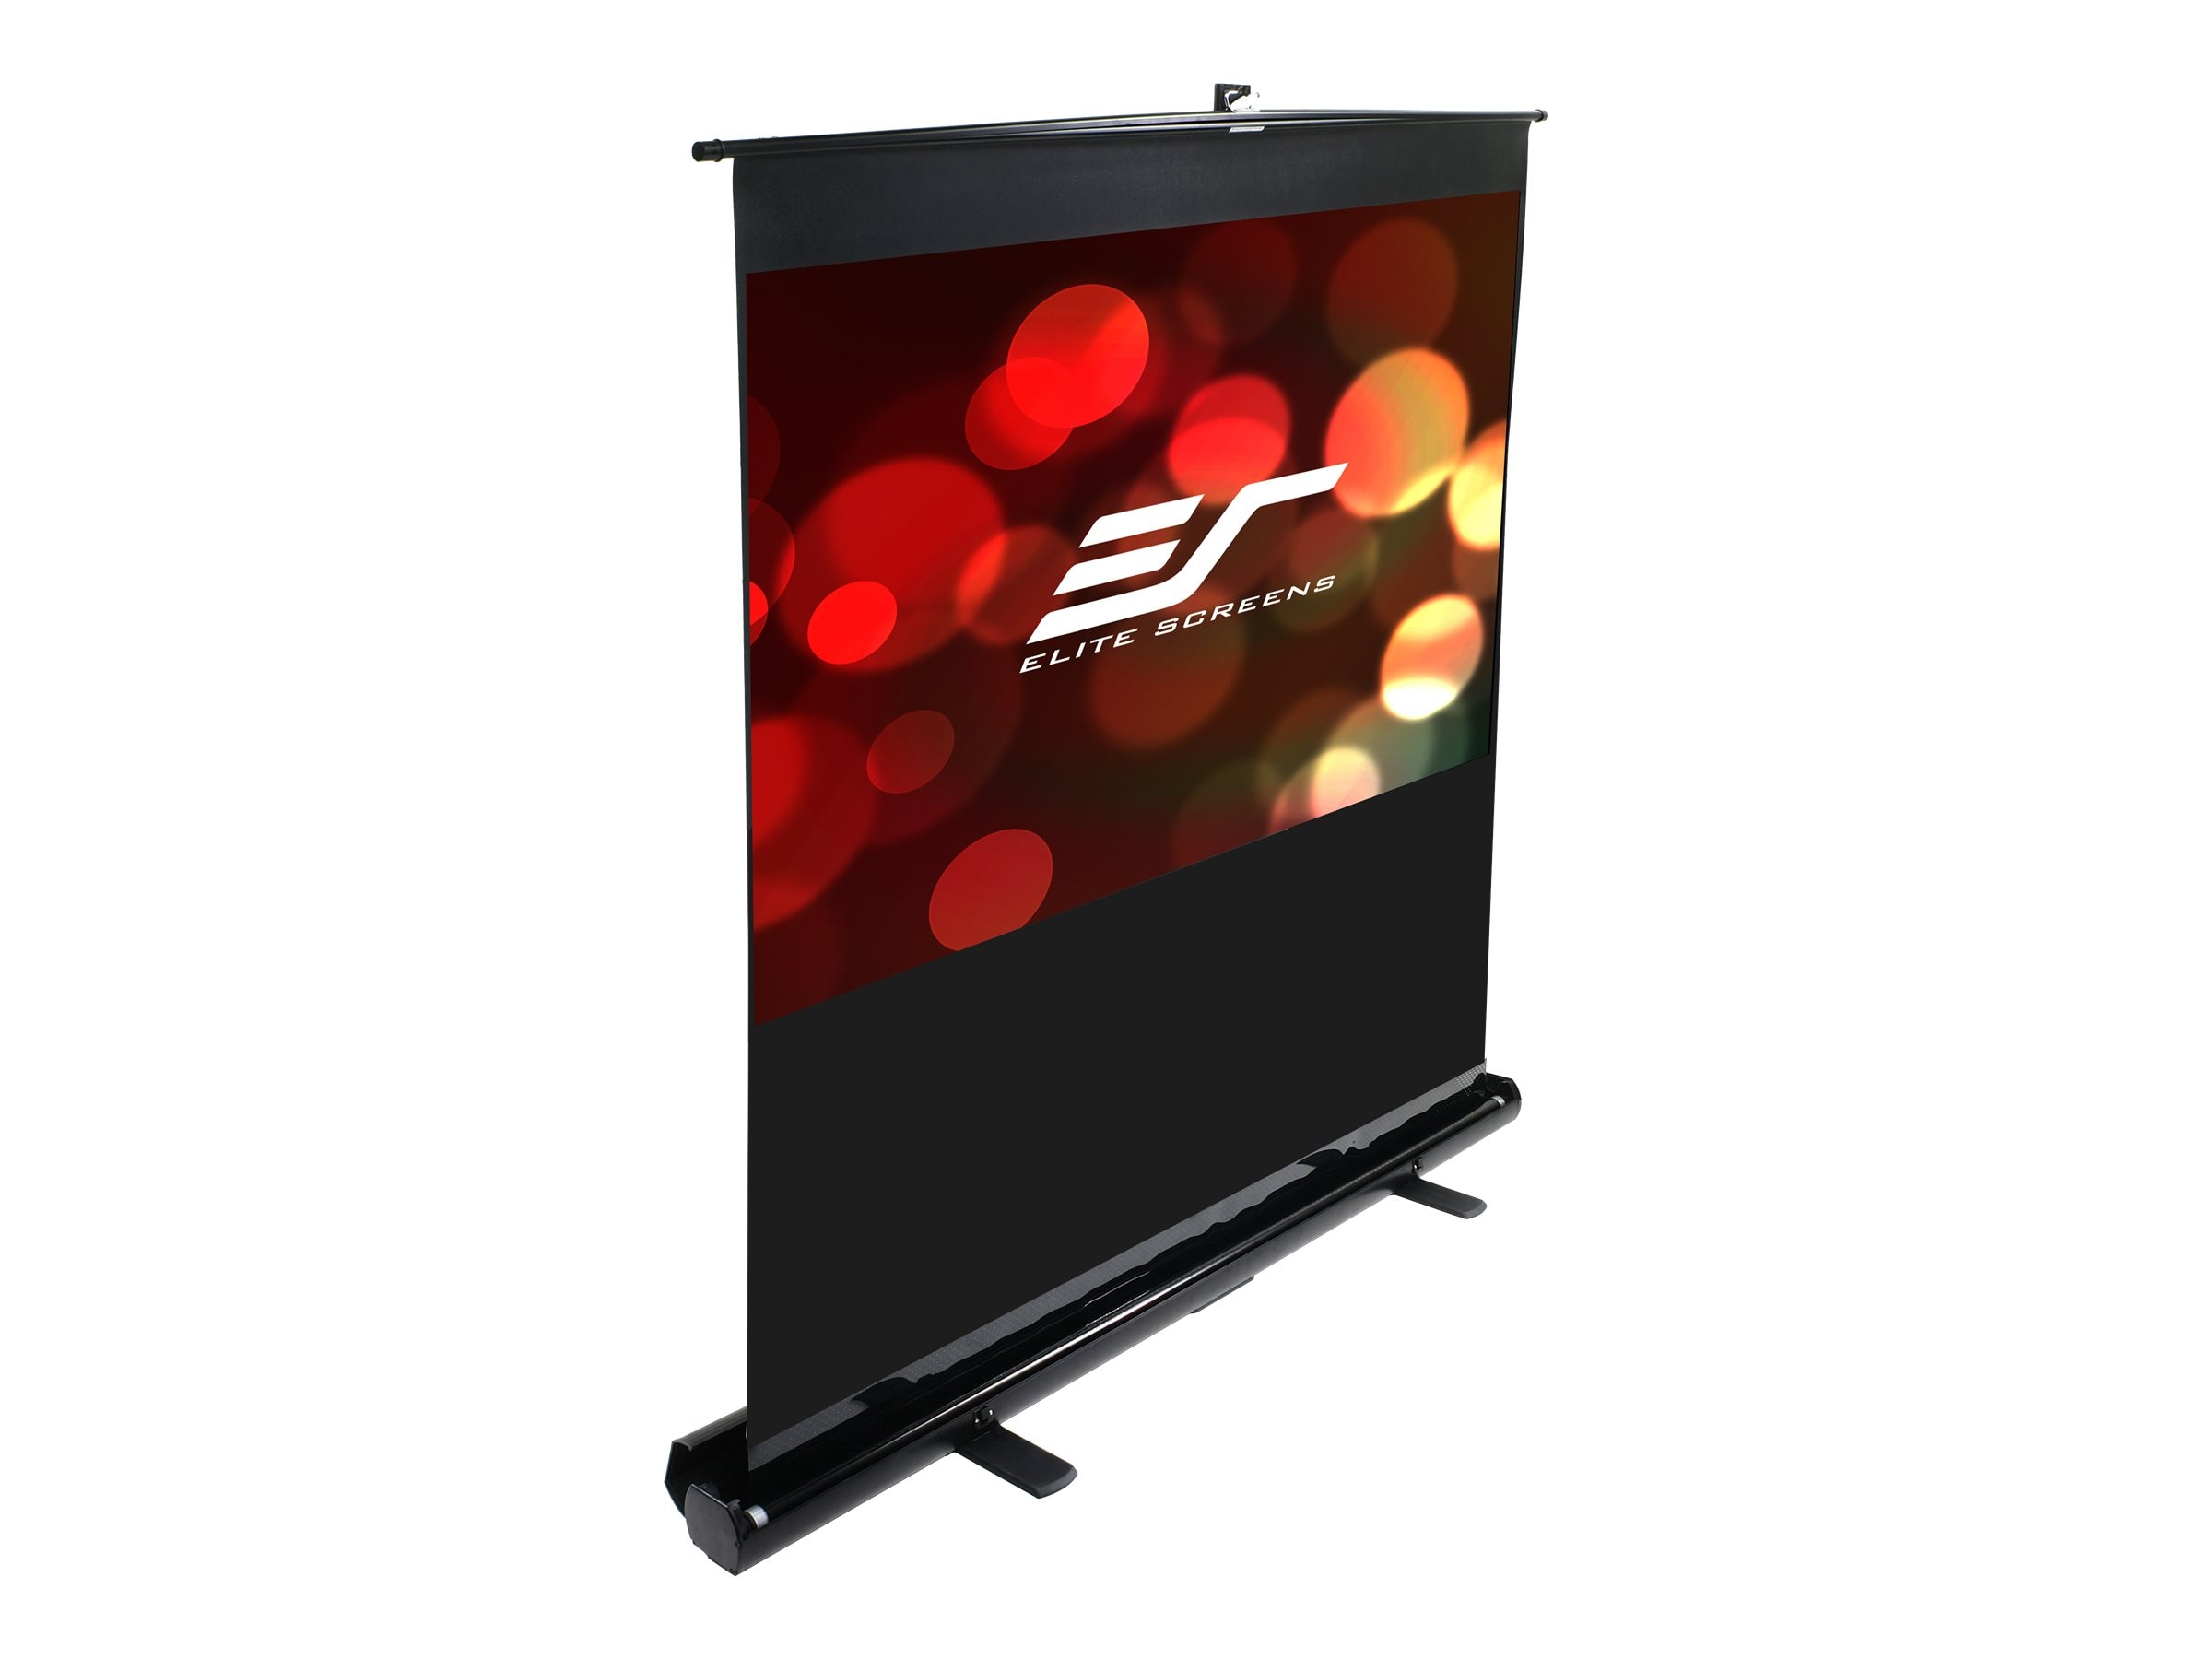 Elite ezCinema Series Projection Screen, MaxWhite, 16:9, 150, F150NWH, 12579523, Projector Screens